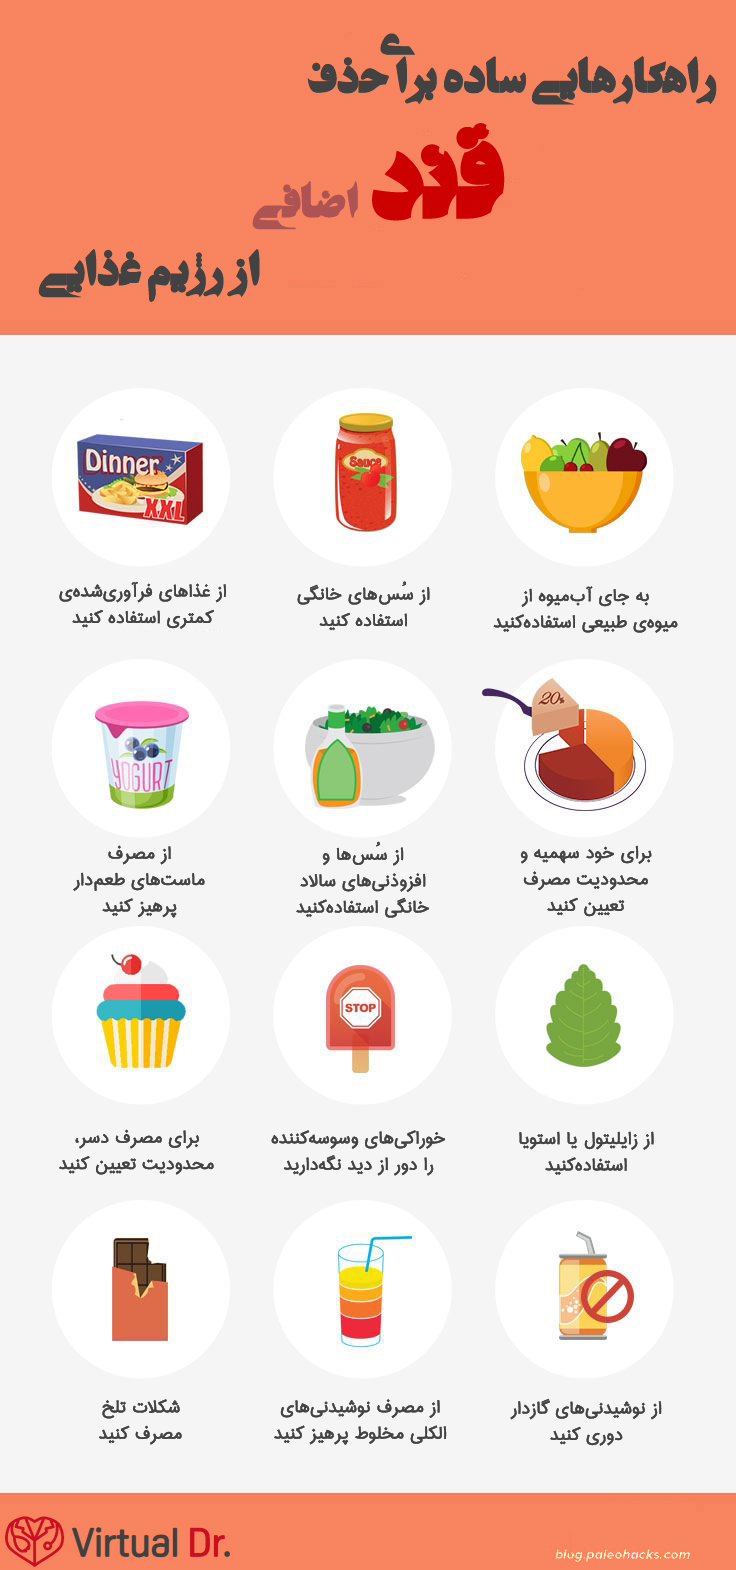 Easy_Ways_to_Cut_Sugar_Out_of_Your_Diet_infographic-virtualdr